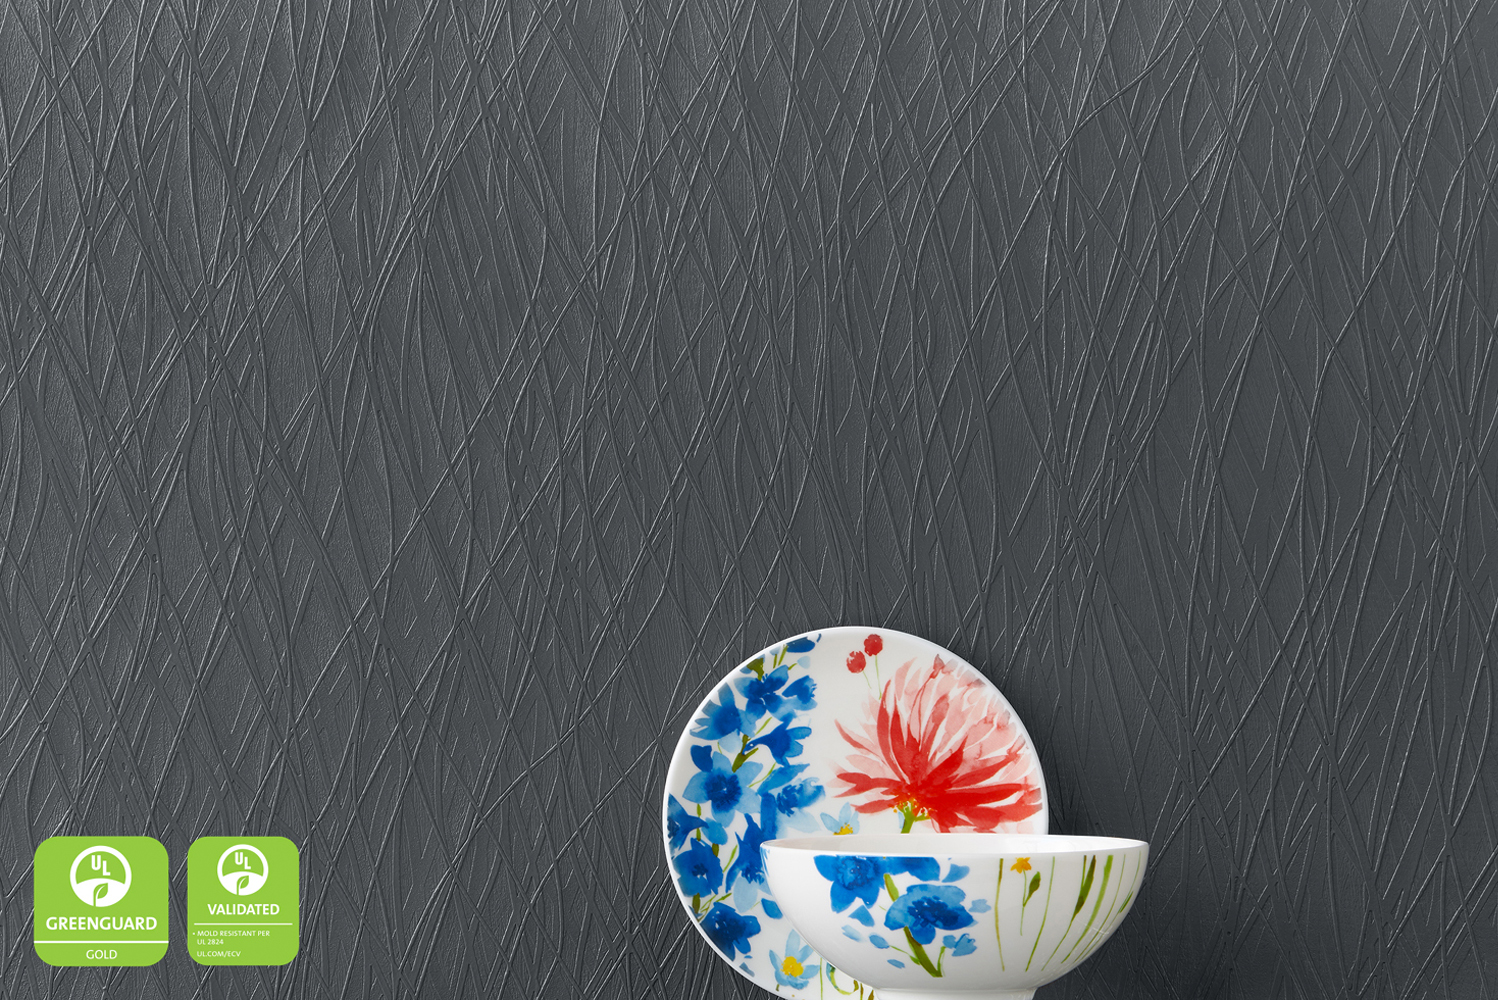 The wallcoverings also received an Environmental Claim Validation from UL for mold resistance.